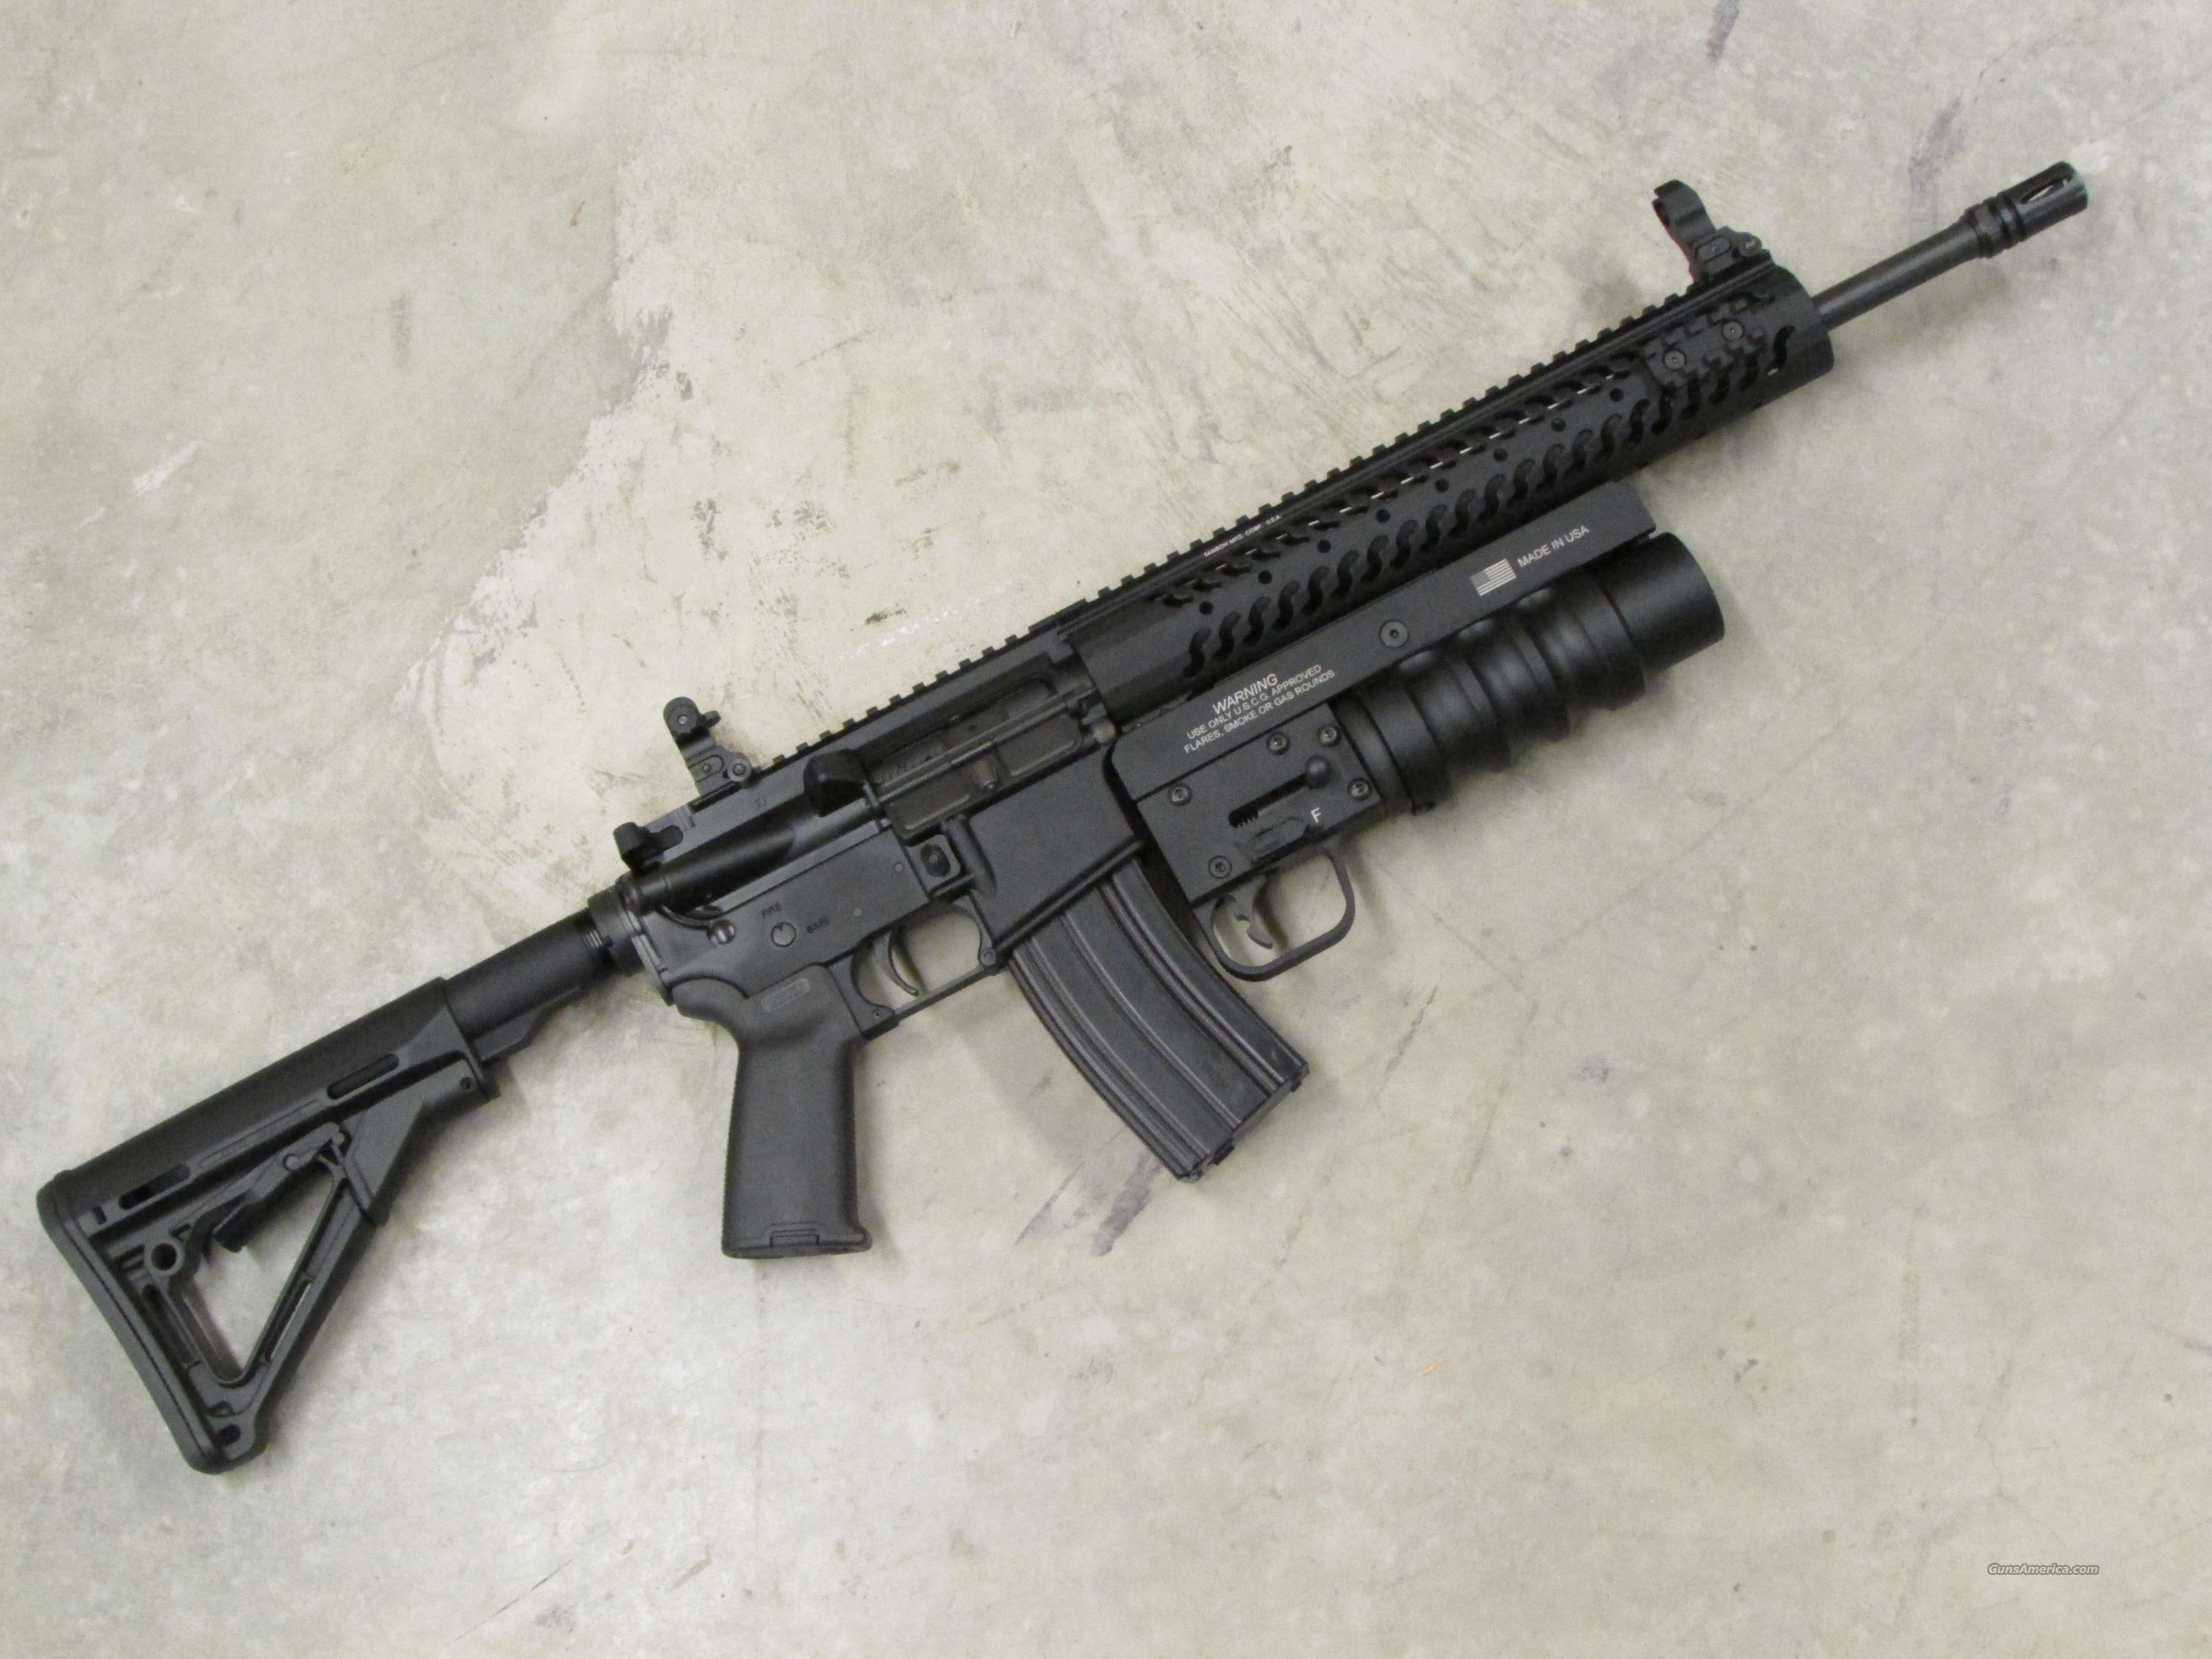 Del-Ton AR15 DTI Evolution with Spikes Tactical    for sale